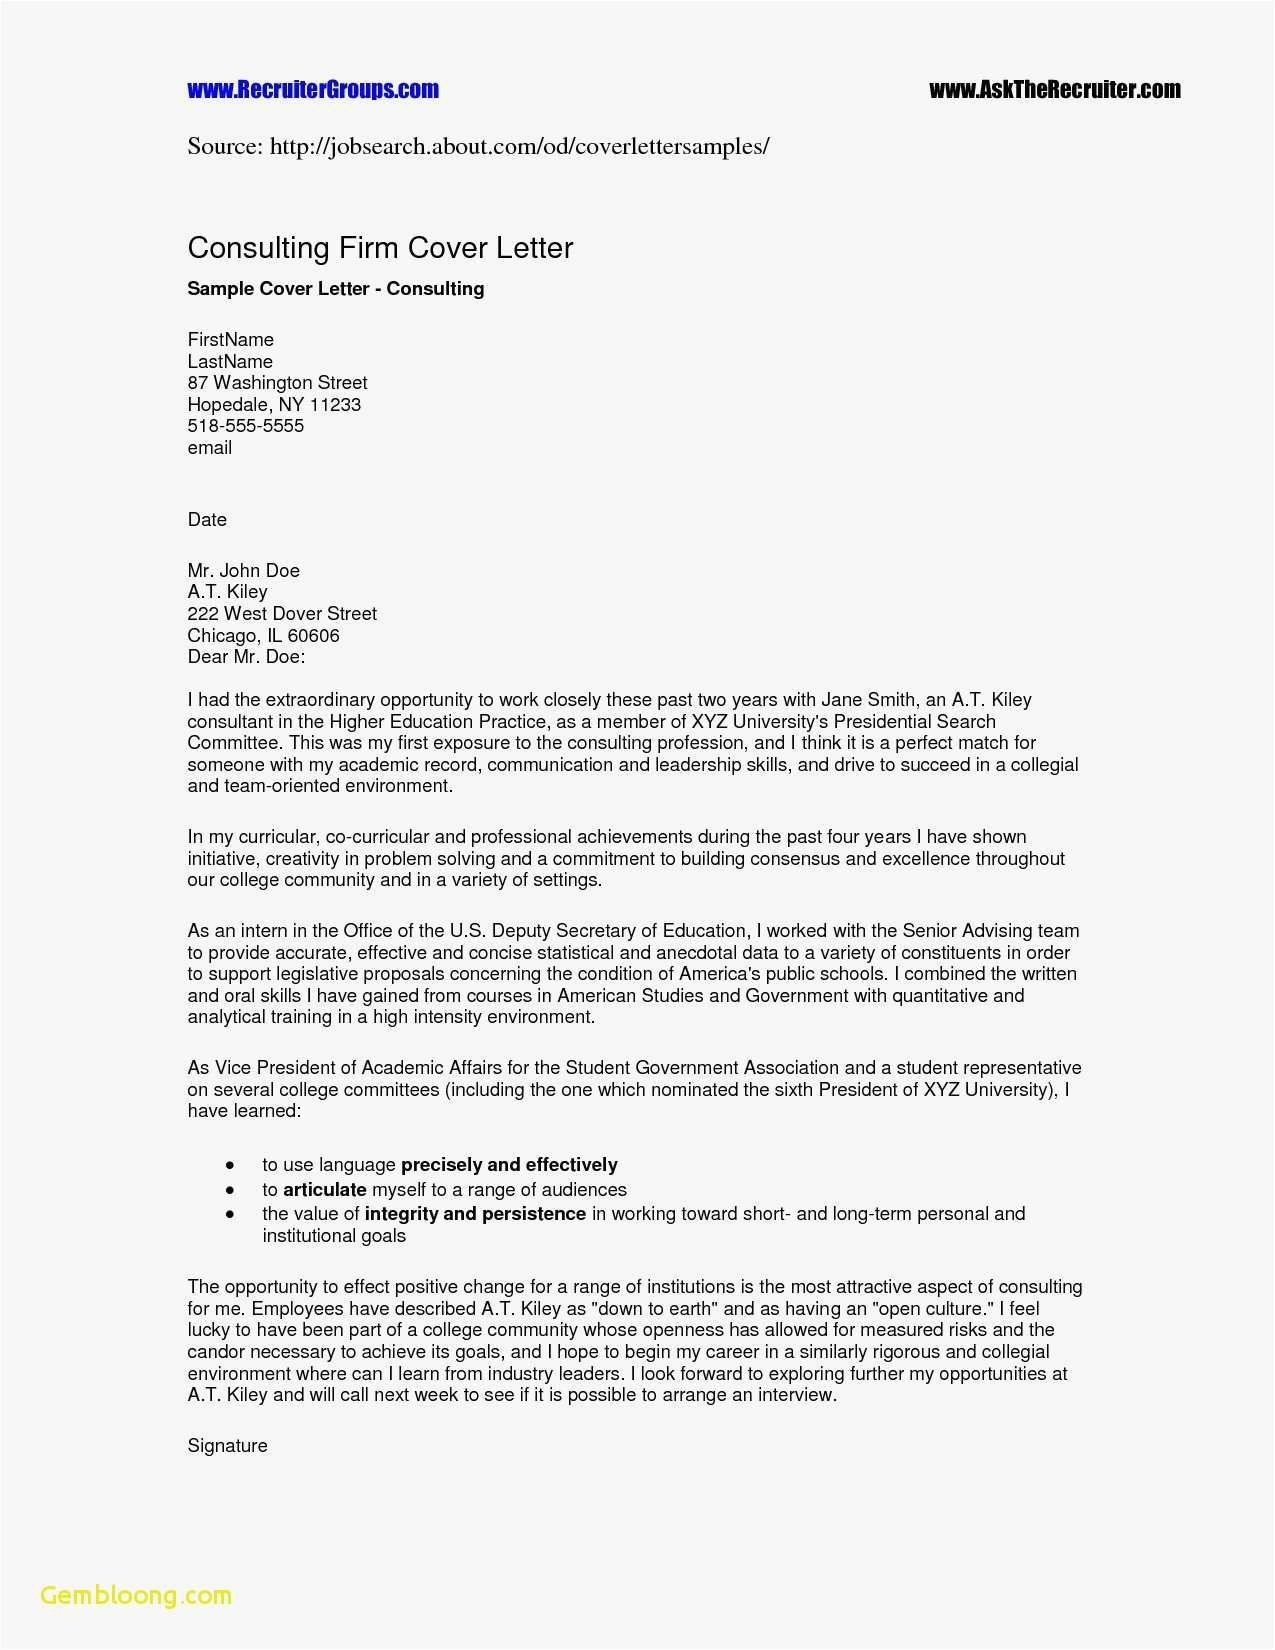 Ncci Com Worksheets  Briefencounters With Regard To Ncci Com Worksheets